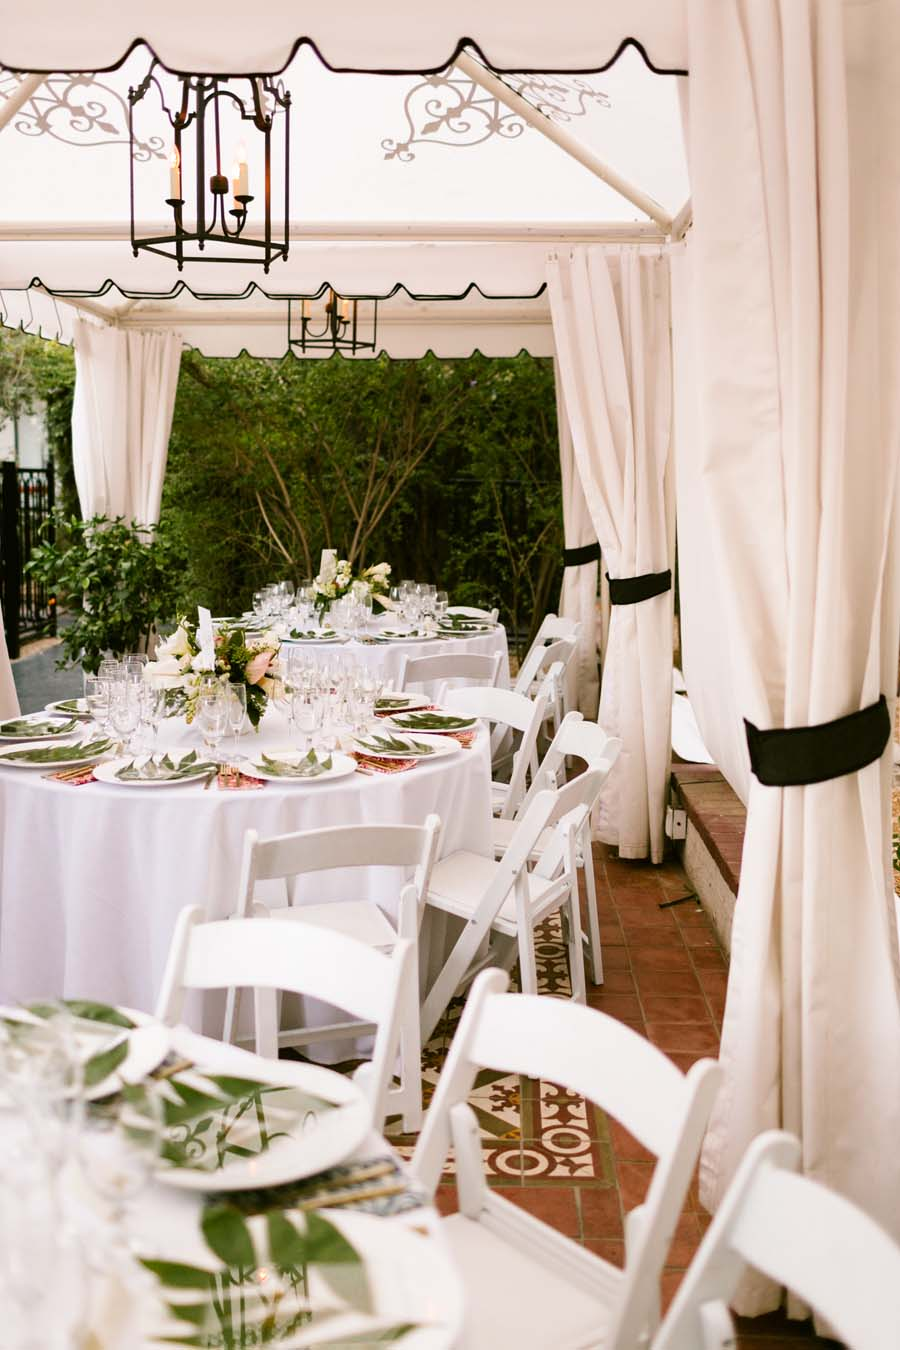 stylishdetailsevents.com | Colony Palms Weddings | Stylish Details Planning and Event Design | Julia Robbs Photography | Southern California and Hawaii Wedding Planner  6 (1).jpg